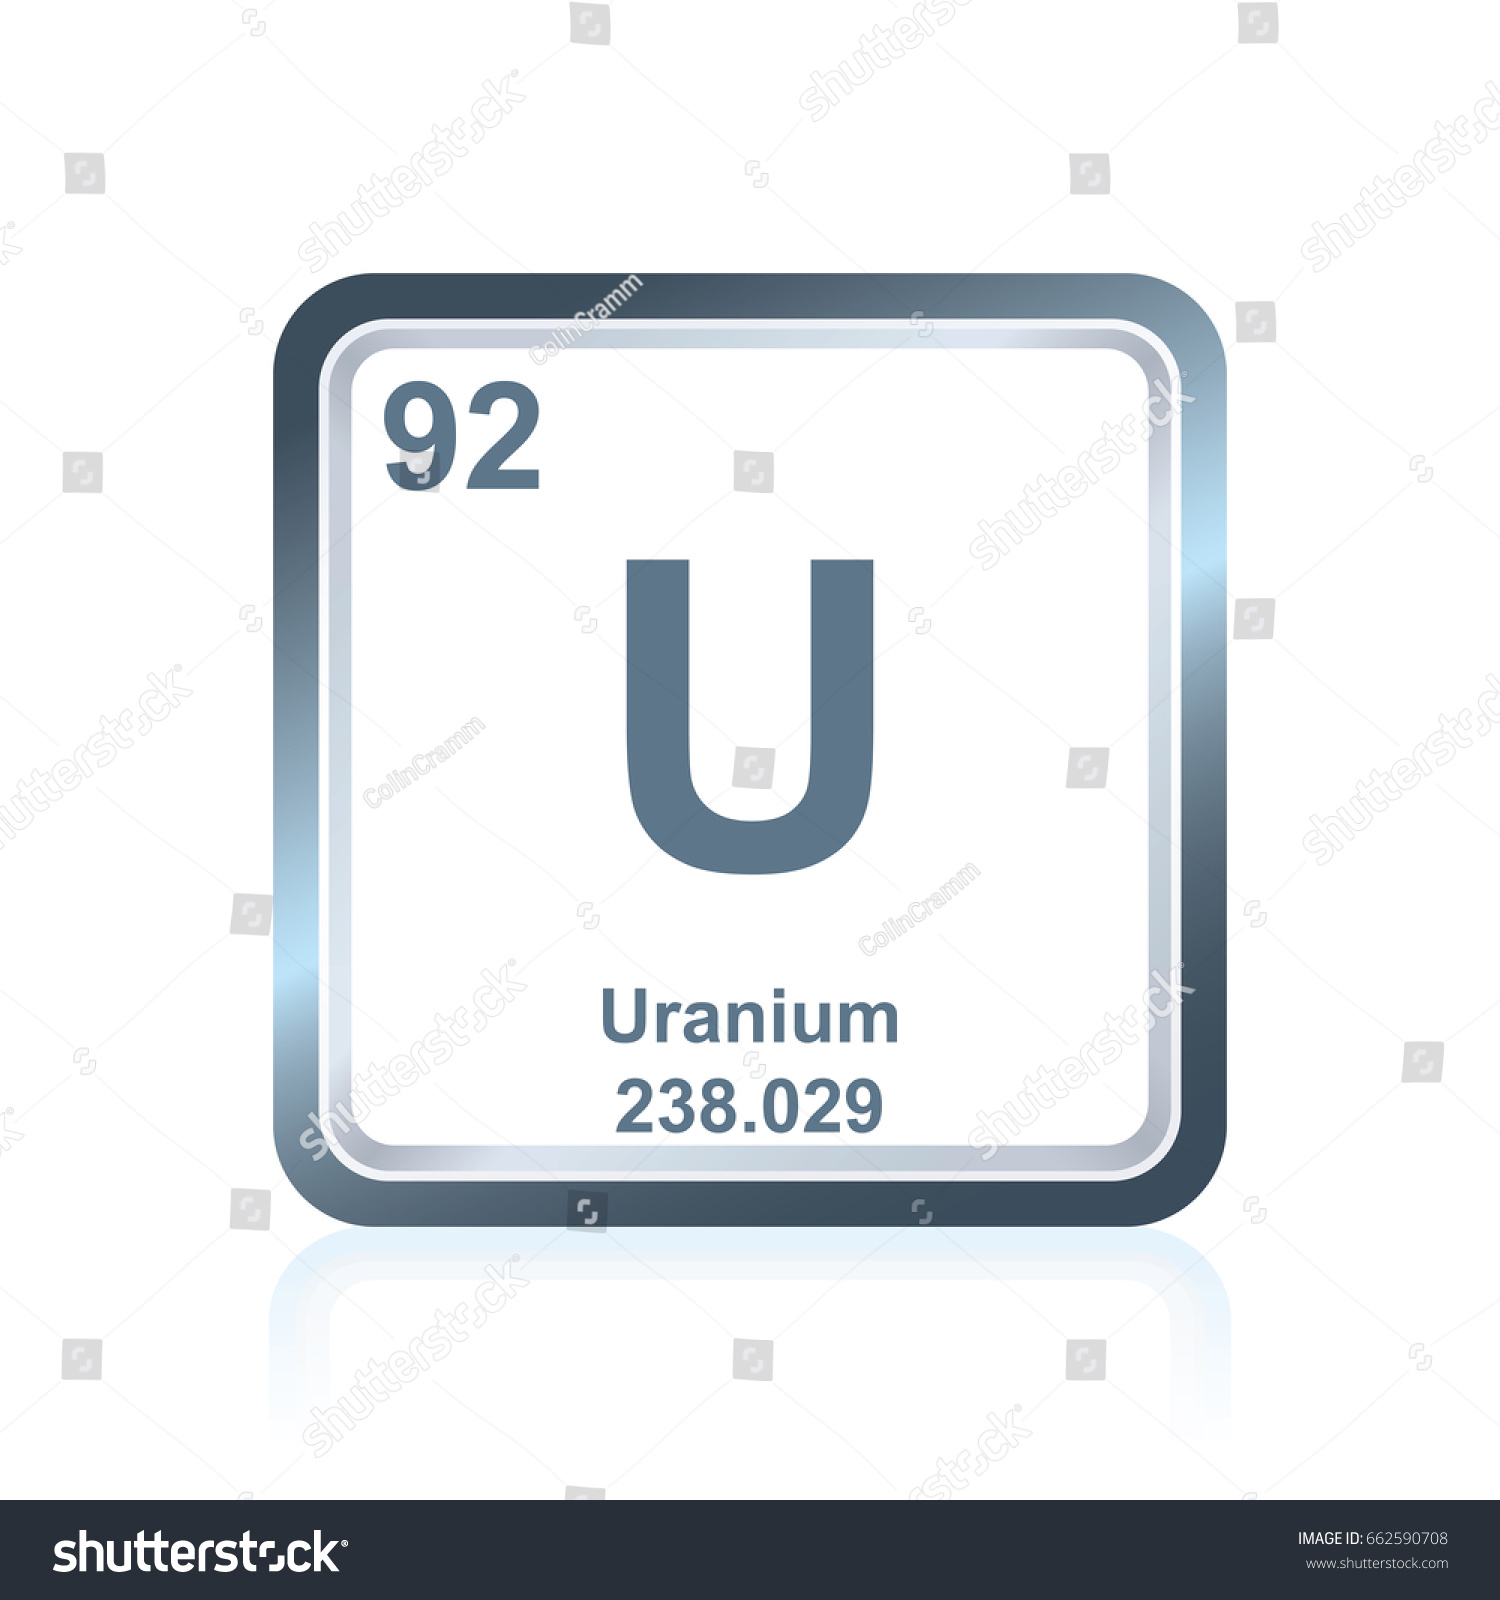 Symbol chemical element uranium seen on stock vector 662590708 symbol of chemical element uranium as seen on the periodic table of the elements including gamestrikefo Image collections